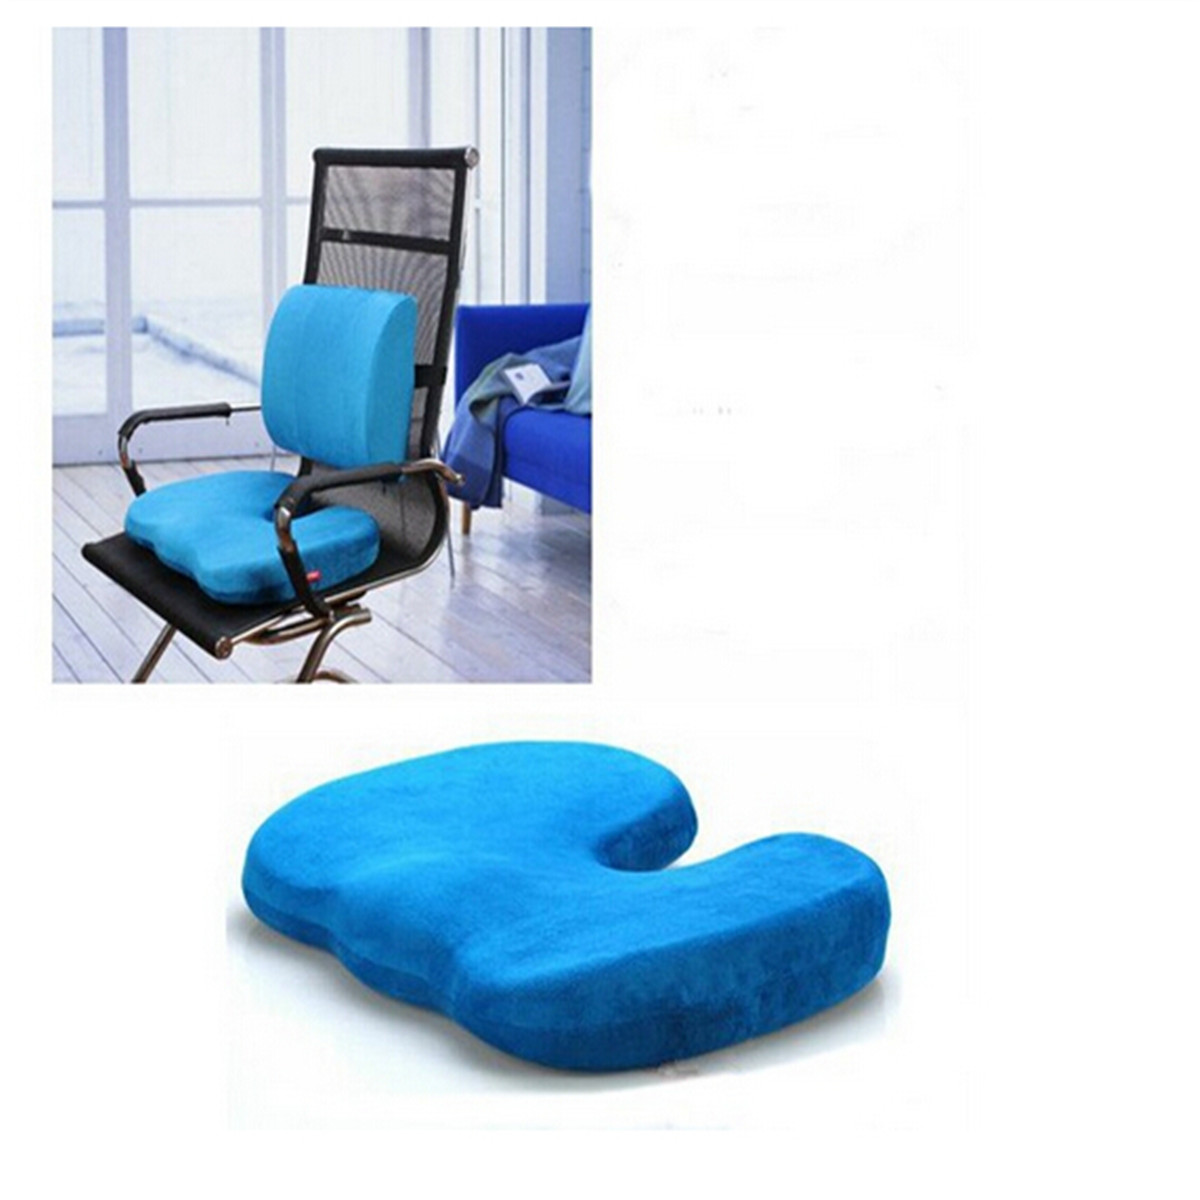 Best Office Chair For Hemorrhoids Poker Table And Chairs Set Hemorrhoid Seat Cushion Memory Foam Coccyx Orthopedic Car